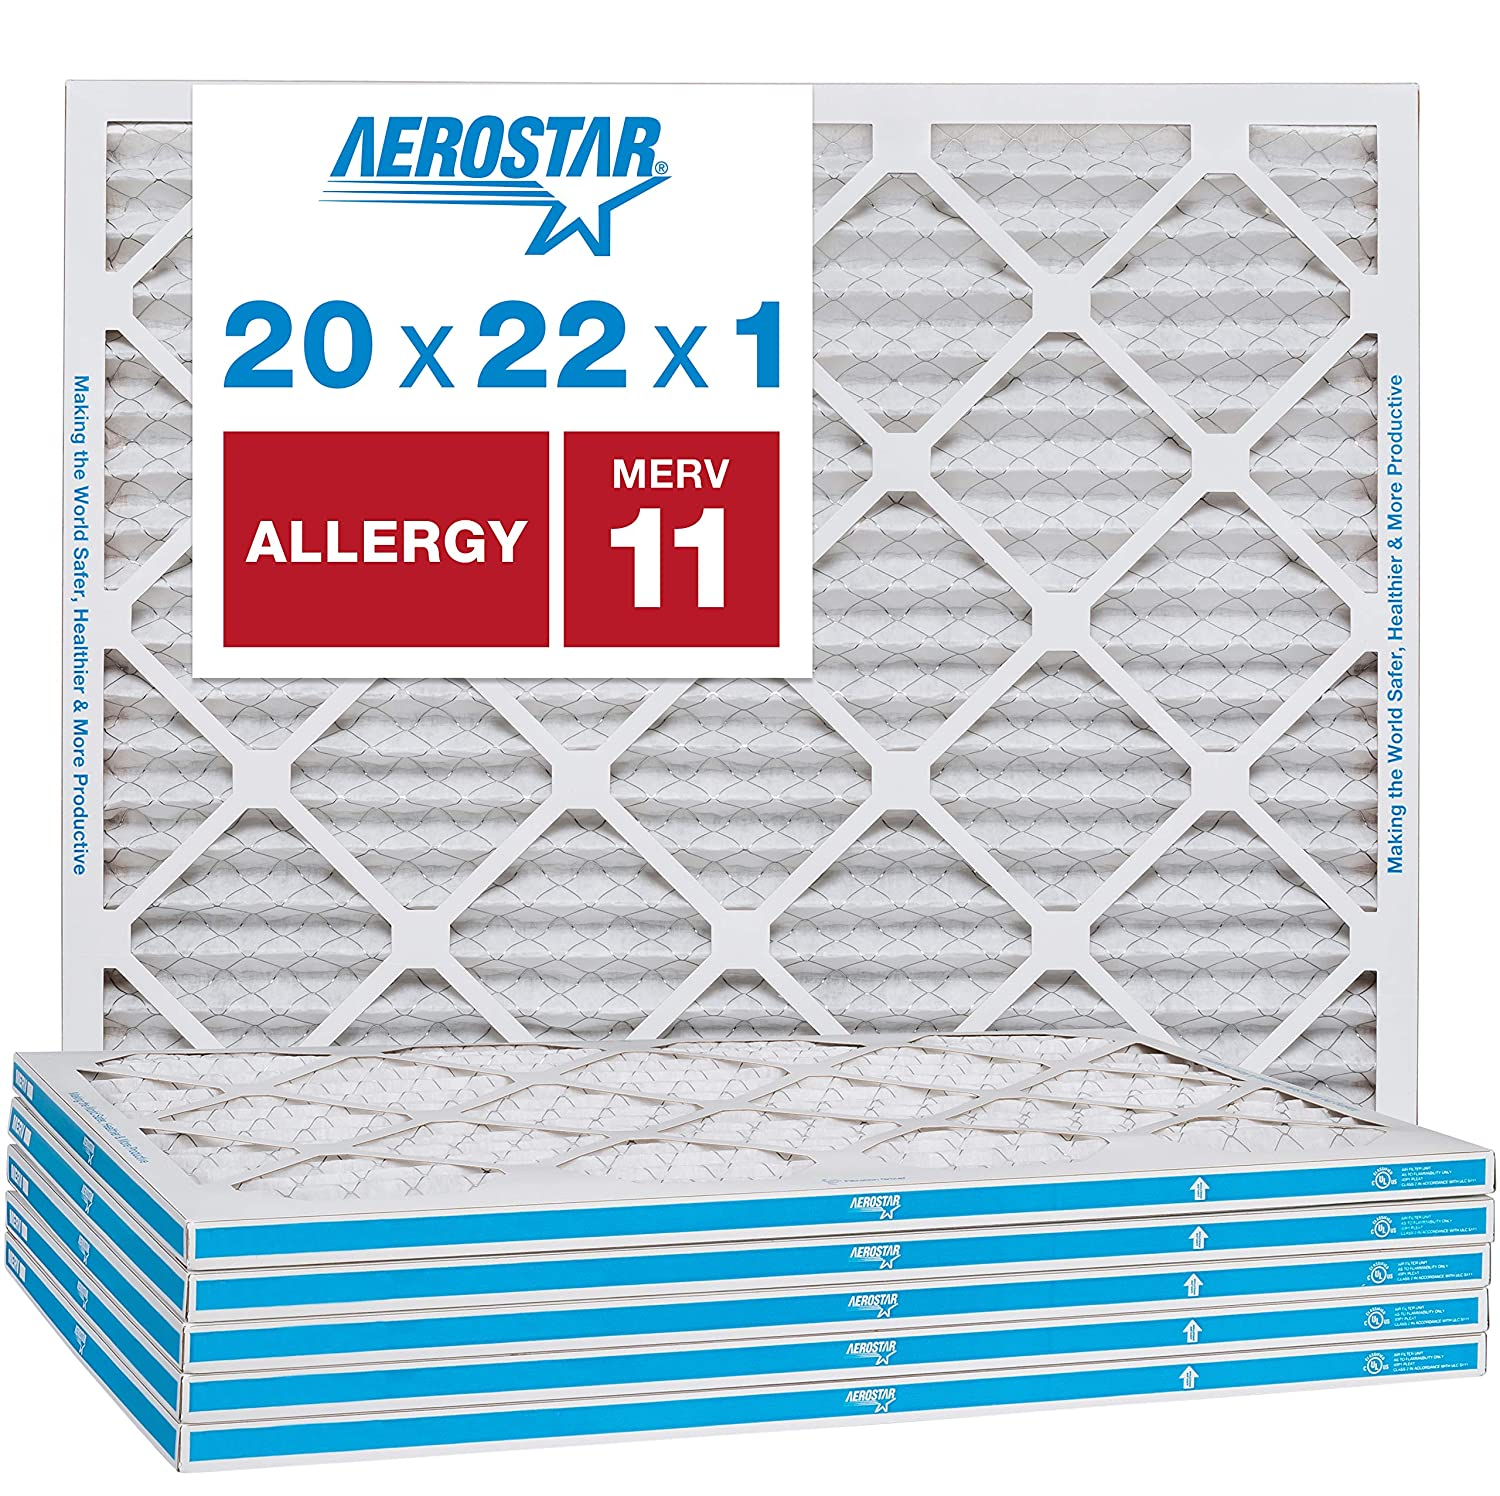 Nordic Pure 13x25x1 MERV 13 Pleated AC Furnace Air Filters 3 Pack